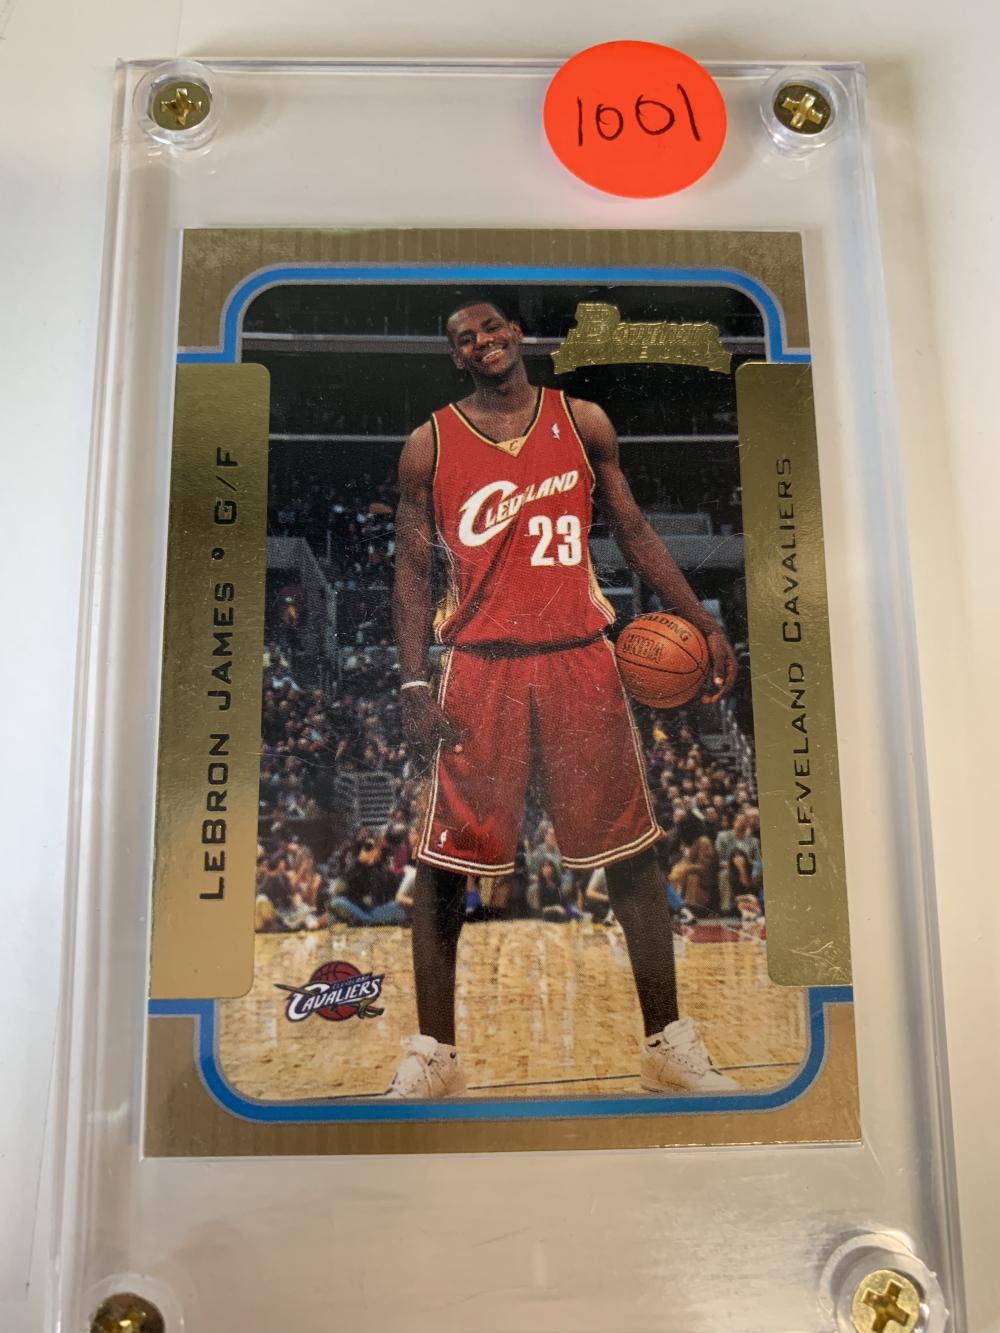 Sold Price 2003 04 Bowman Rookies Lebron James Rookie Card In High Grade Invalid Date Edt